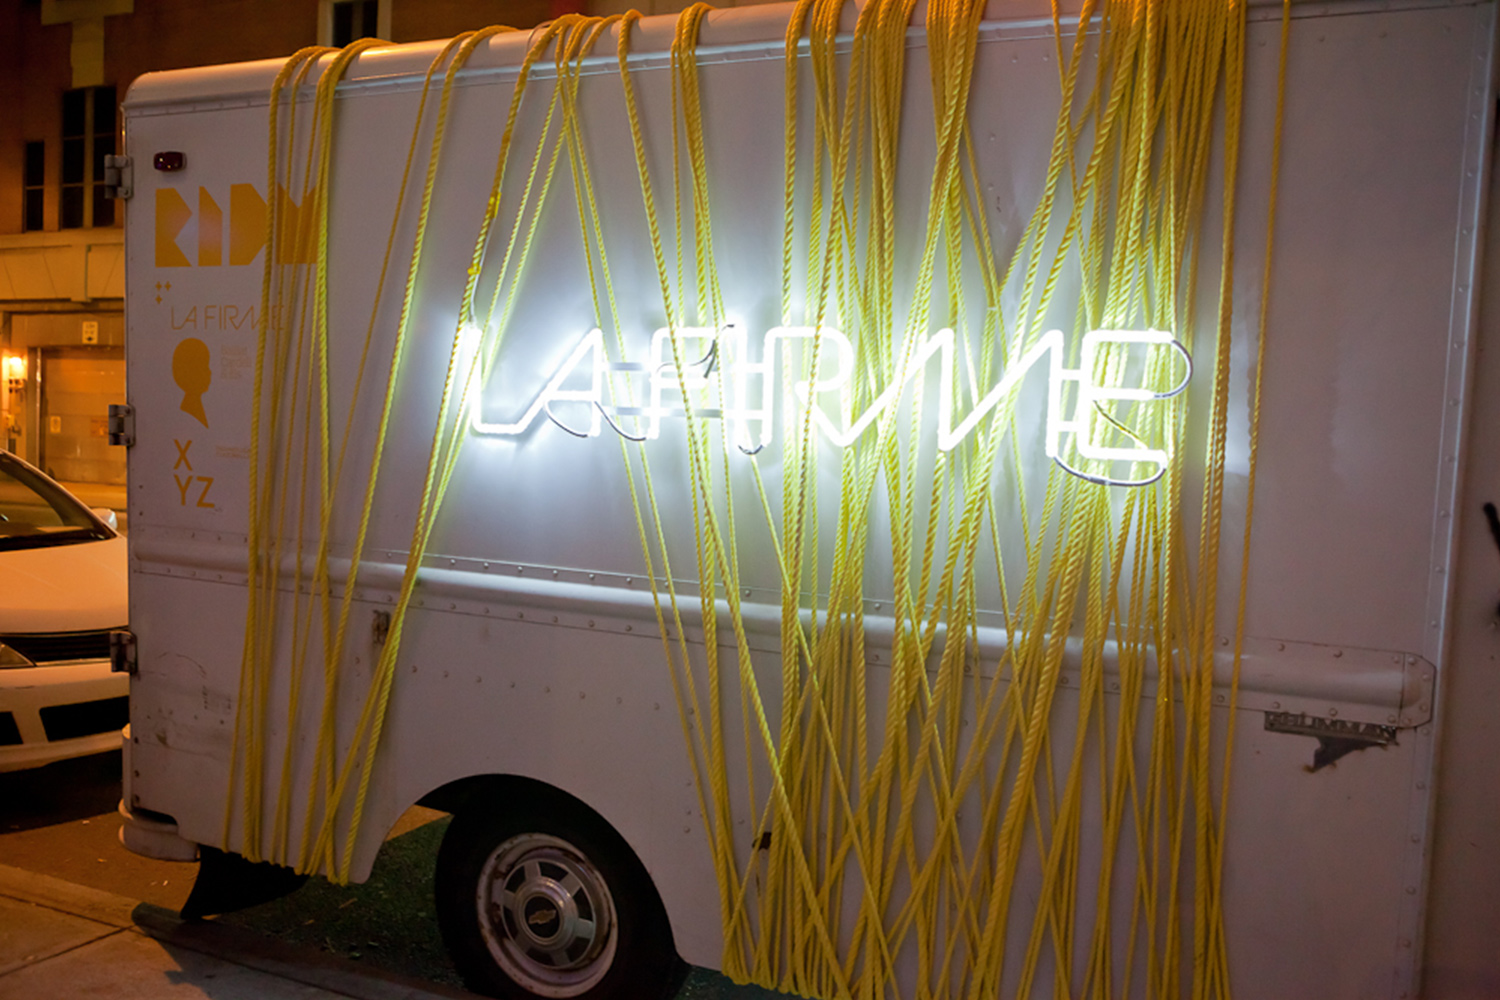 Truck The Firm used for RIDM decorated with many yellow ropes. Fluorescent logo installed on the outside of the vehicle.